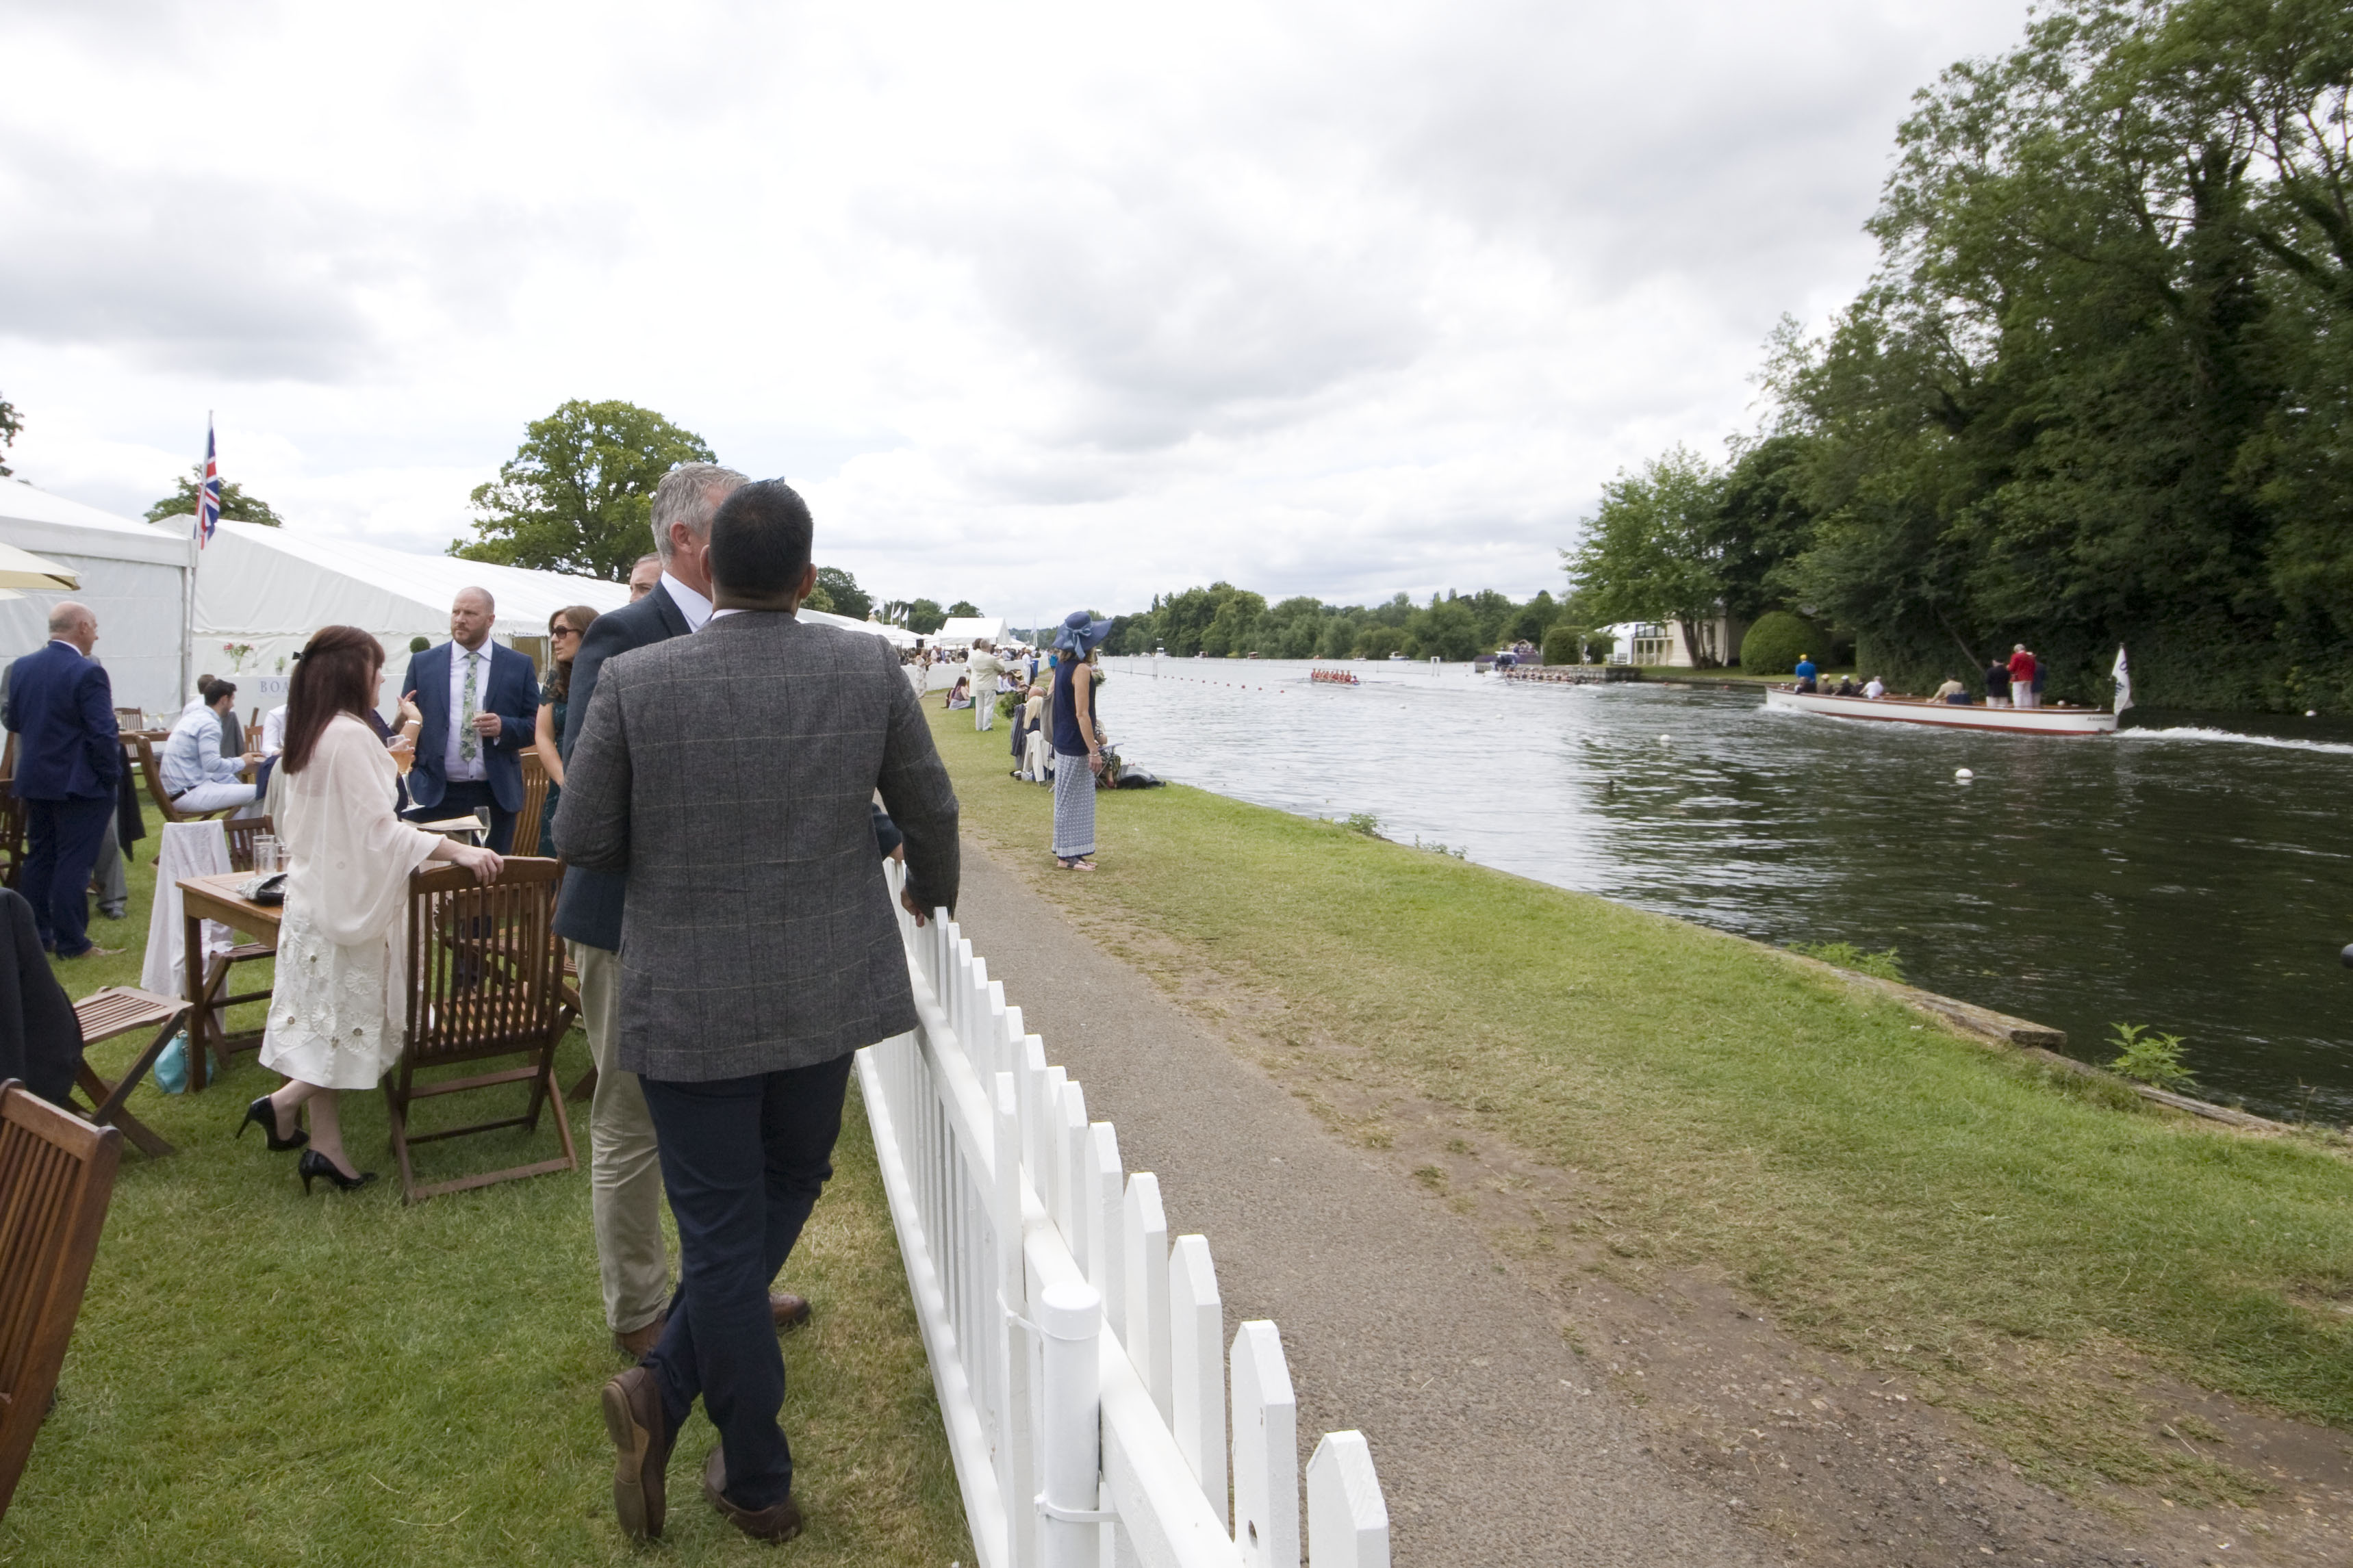 boaters-view-of-rowing.jpg